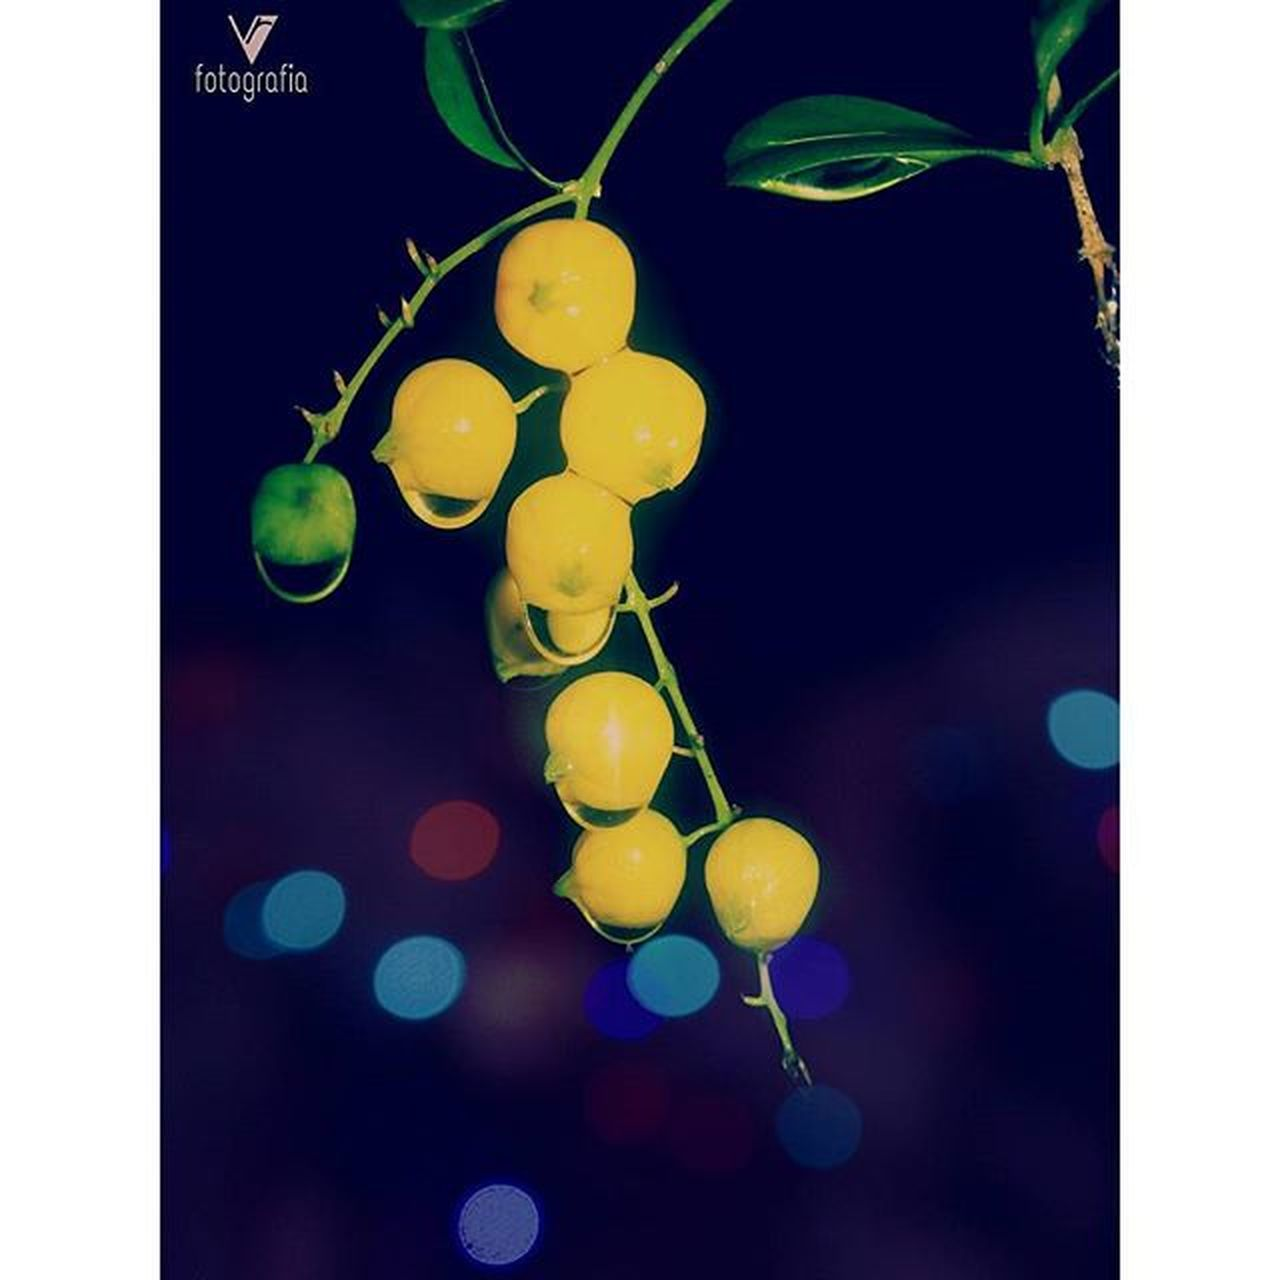 I don't knw her name 👈... BT she reminded me of my Childhood 👲... When we used 2 play with these yellow beauties... 😀 Yellowish Nightsnap Bokeh_effect Lights Waterdtops Malluink Instanight Picoftheday Likes4likes Samsunggalaxys3 Mobilephotography Afterlight Instamood Instadaily Instalike Mallugram Mallu Igs